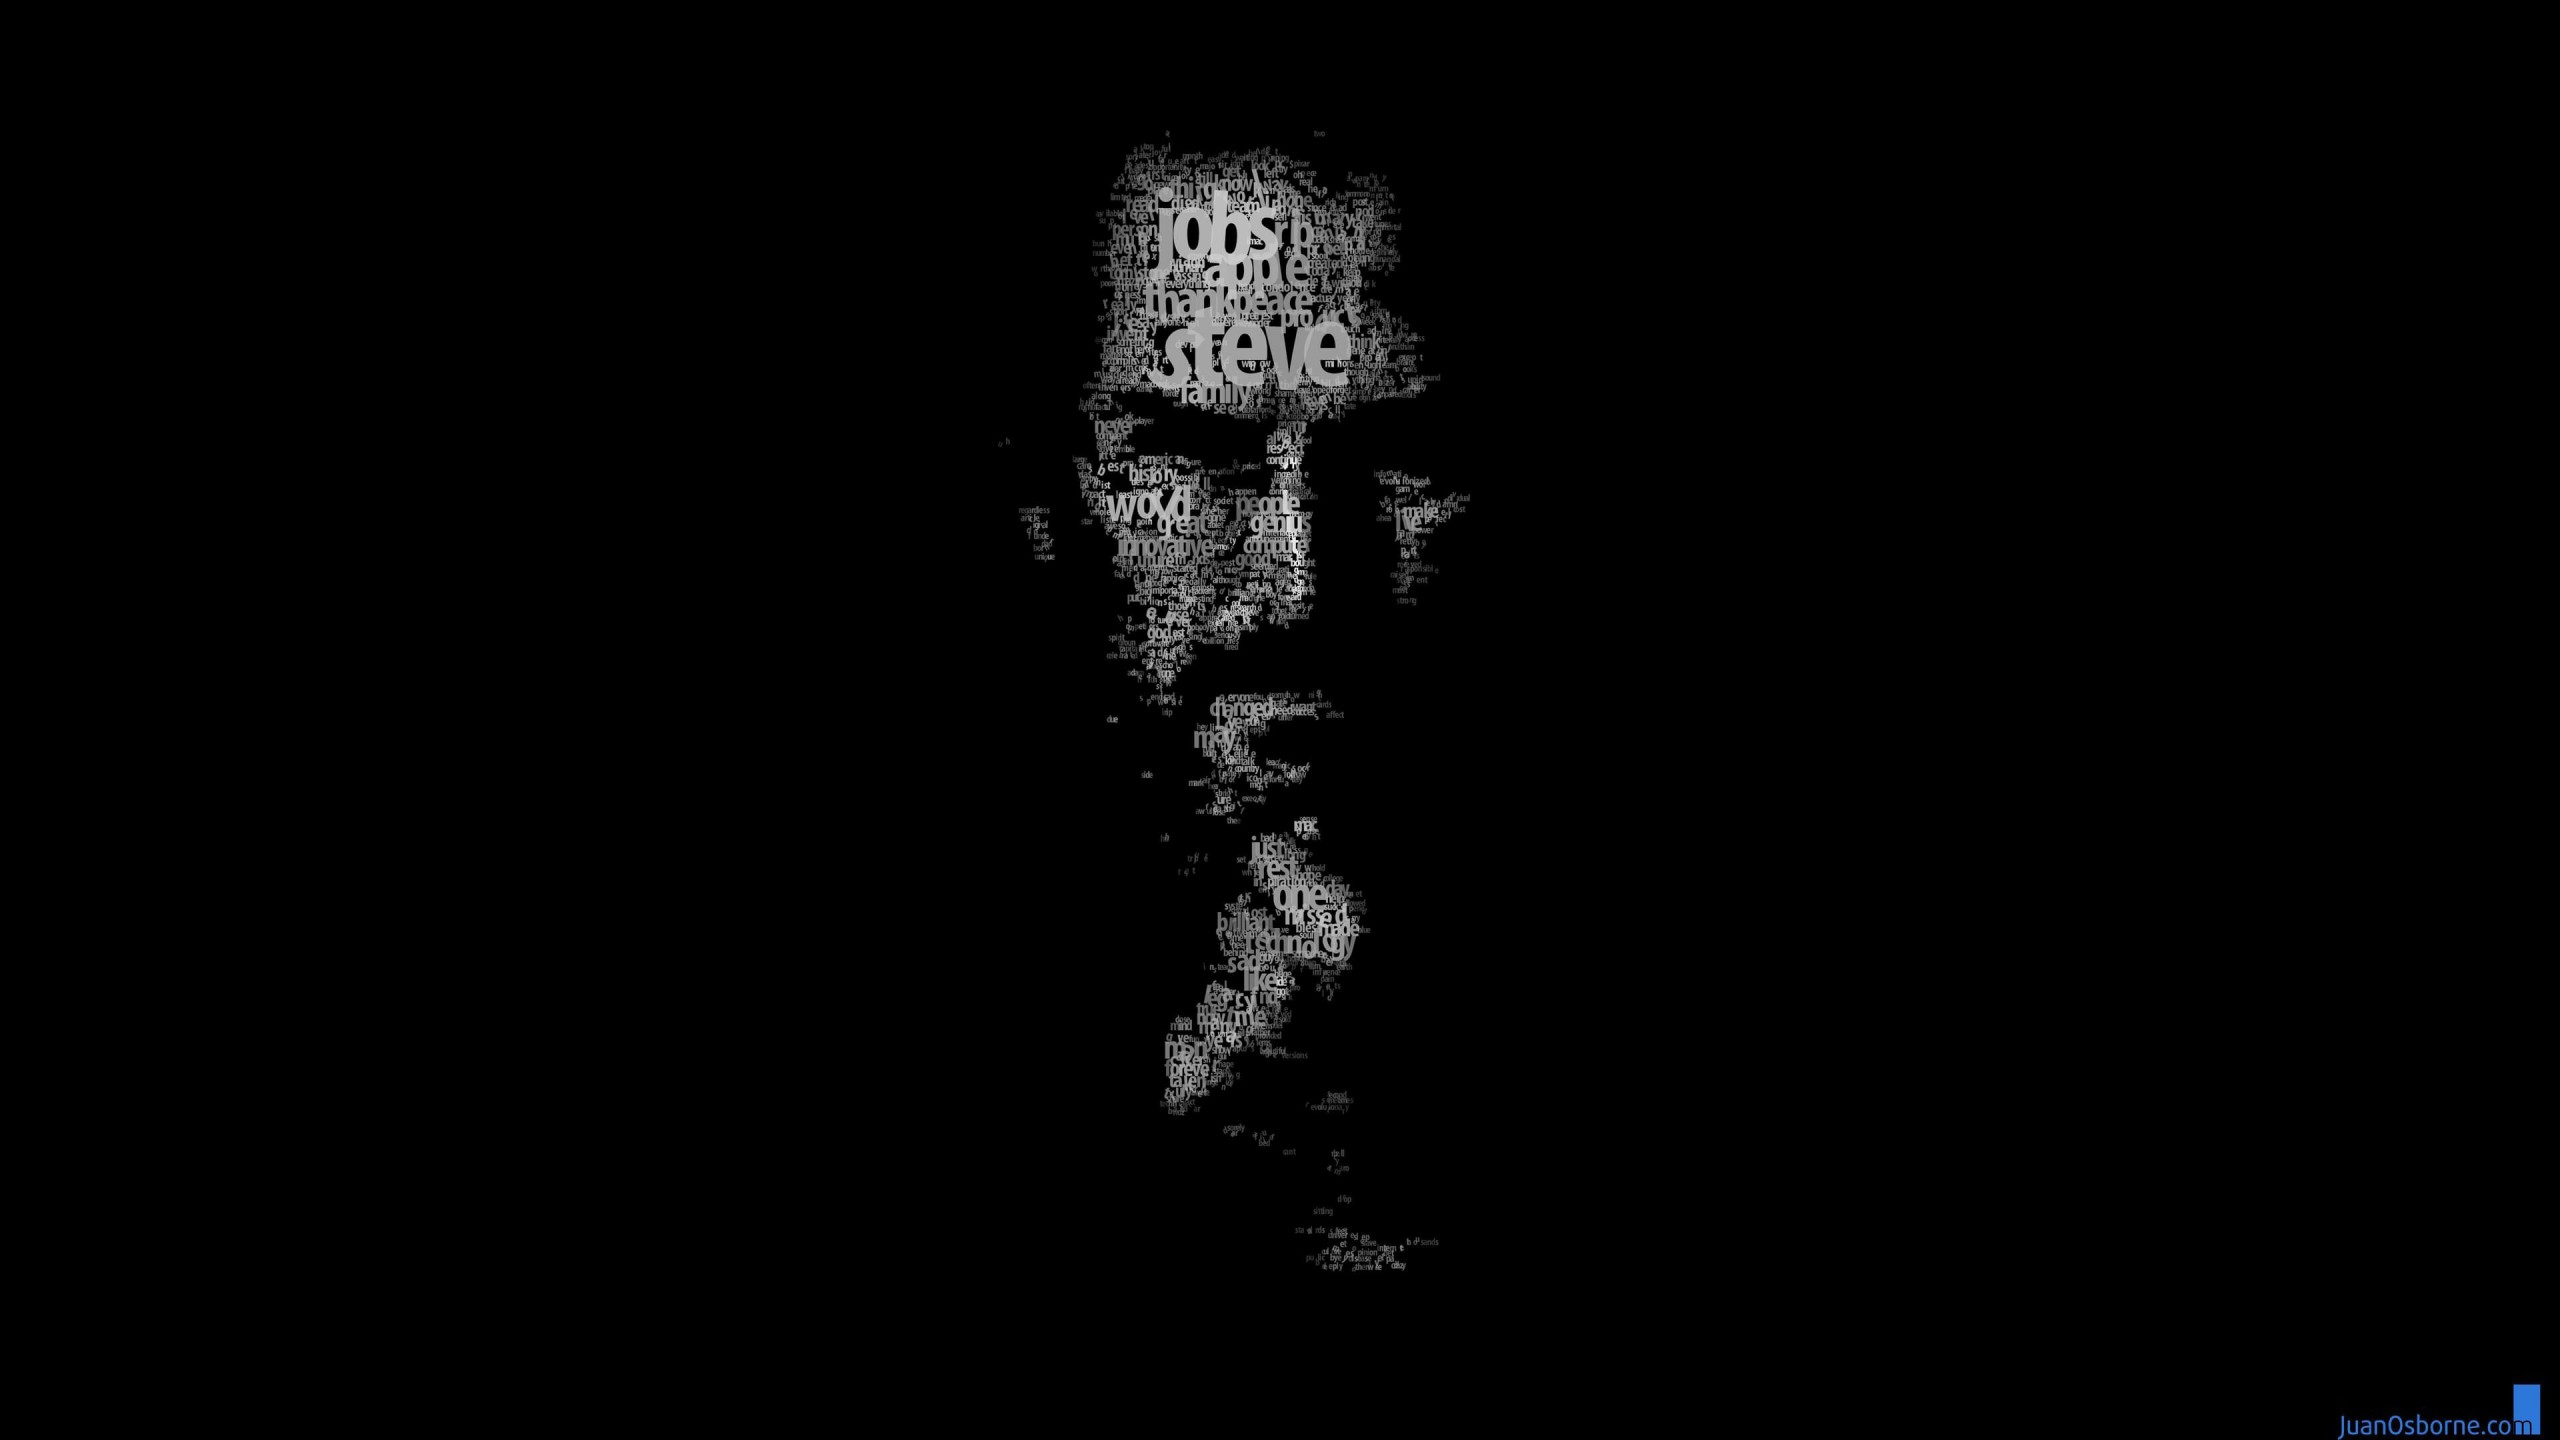 Typeface Portrait of Steve Jobs Wallpaper for Desktop 2560x1440